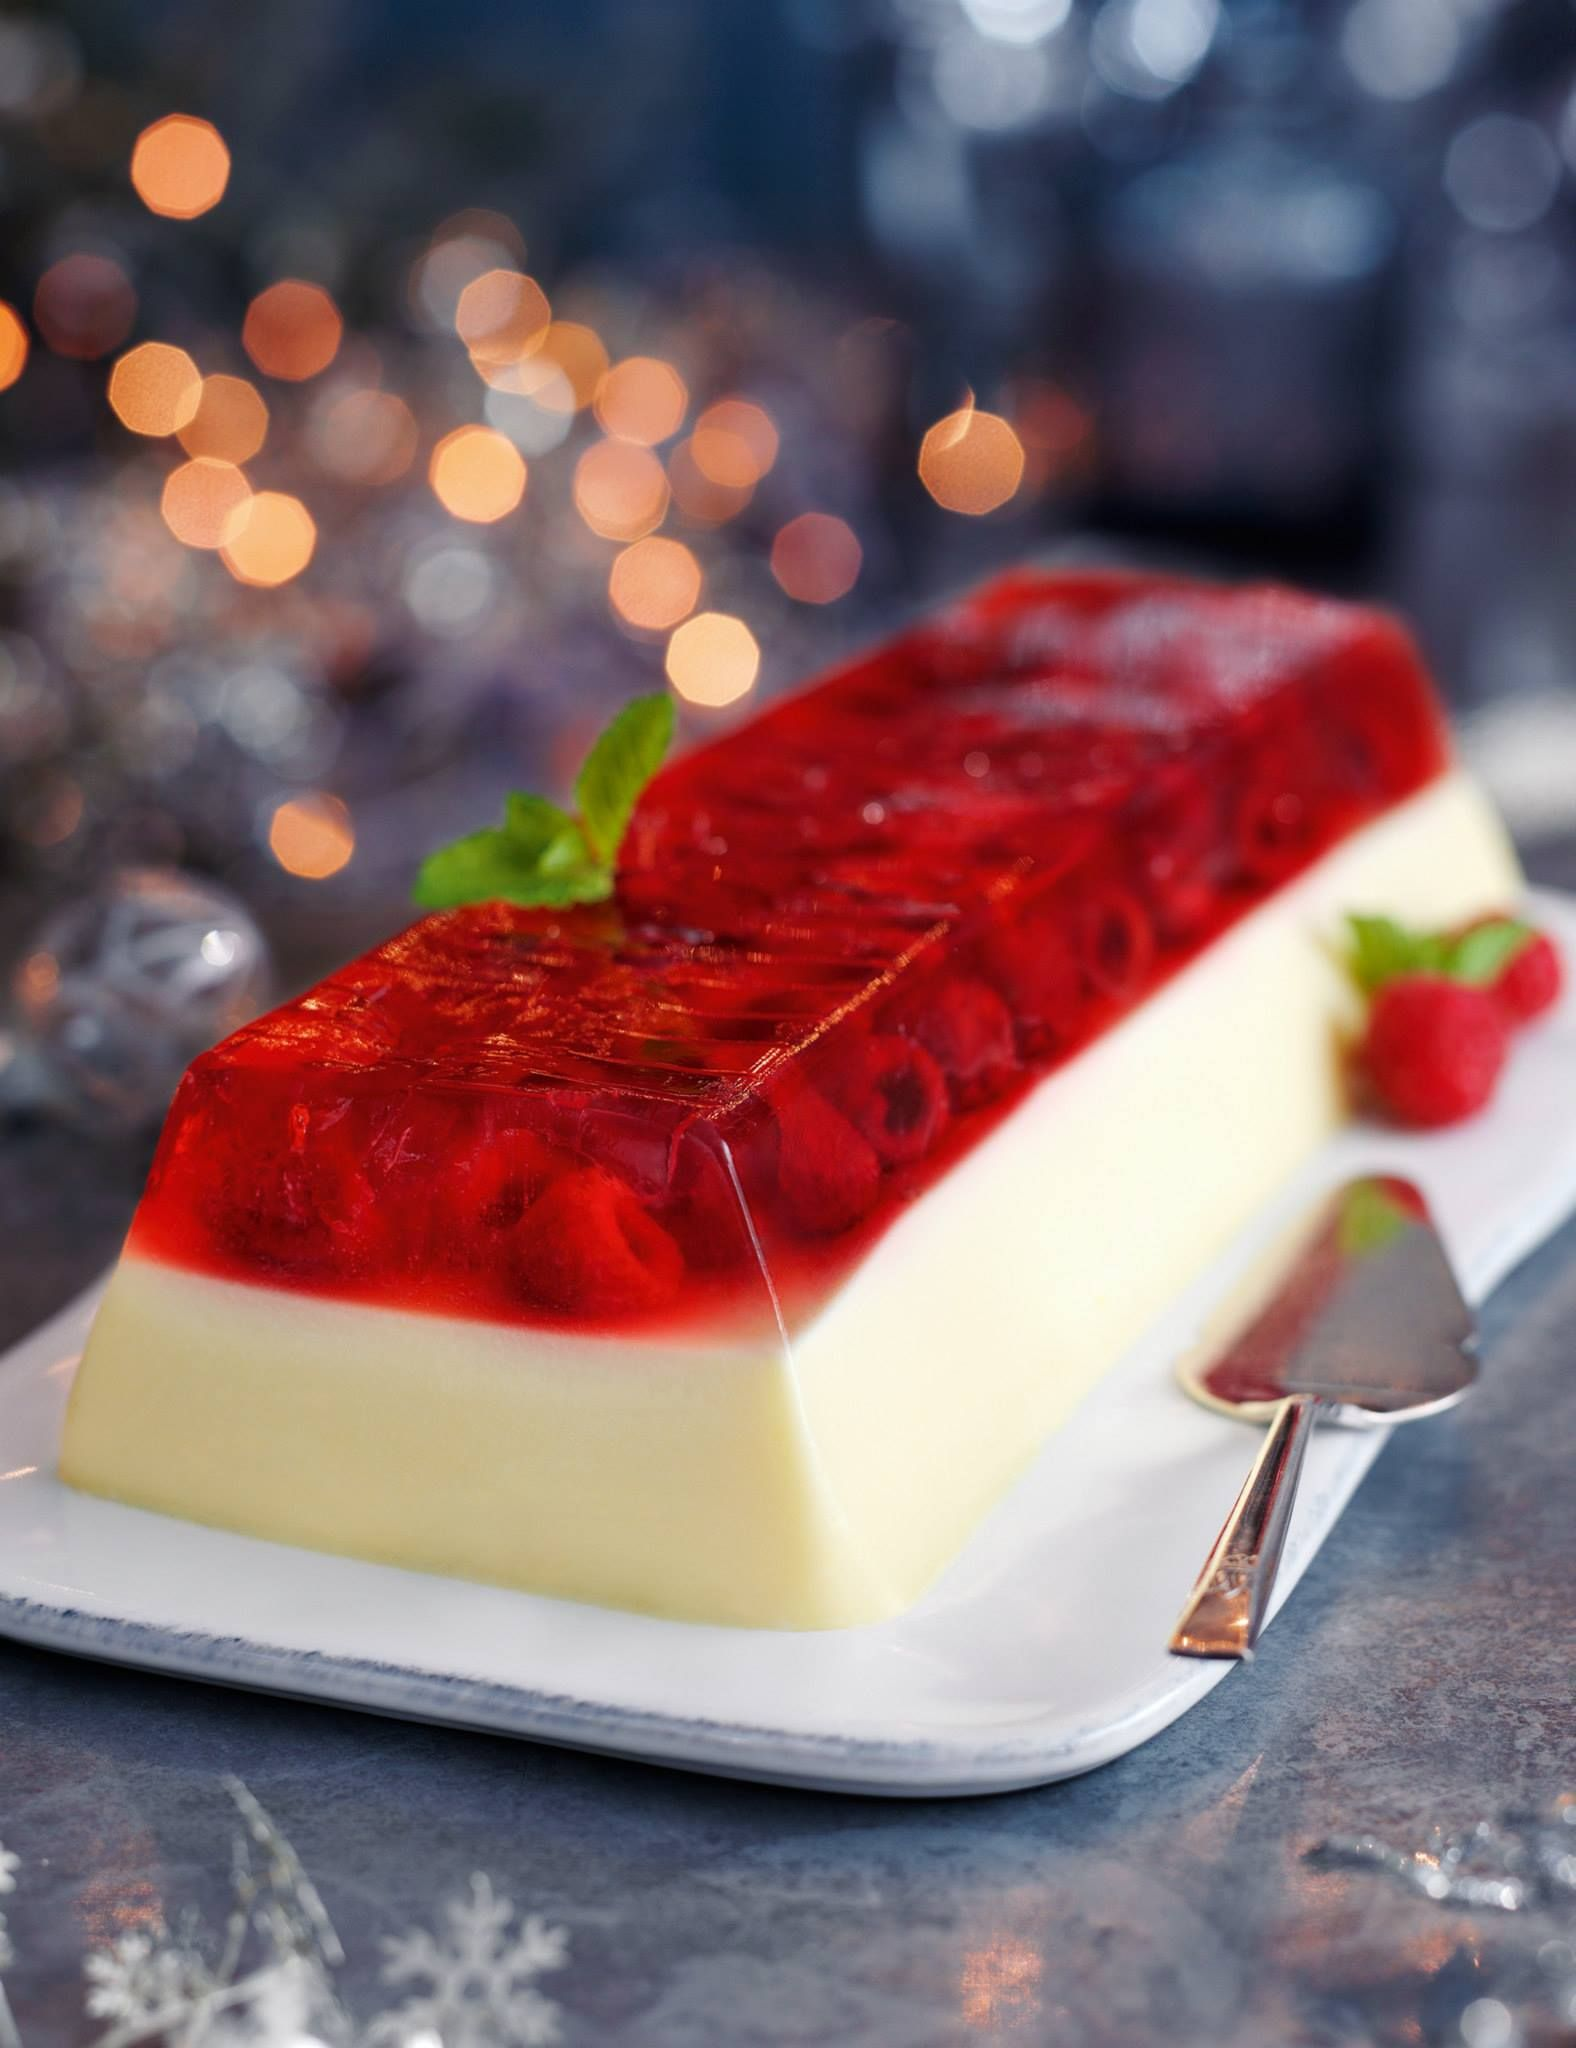 Raspberry prosecco panna cotta terrine food ideas pinterest food ideas raspberry prosecco panna cotta terrine forumfinder Choice Image